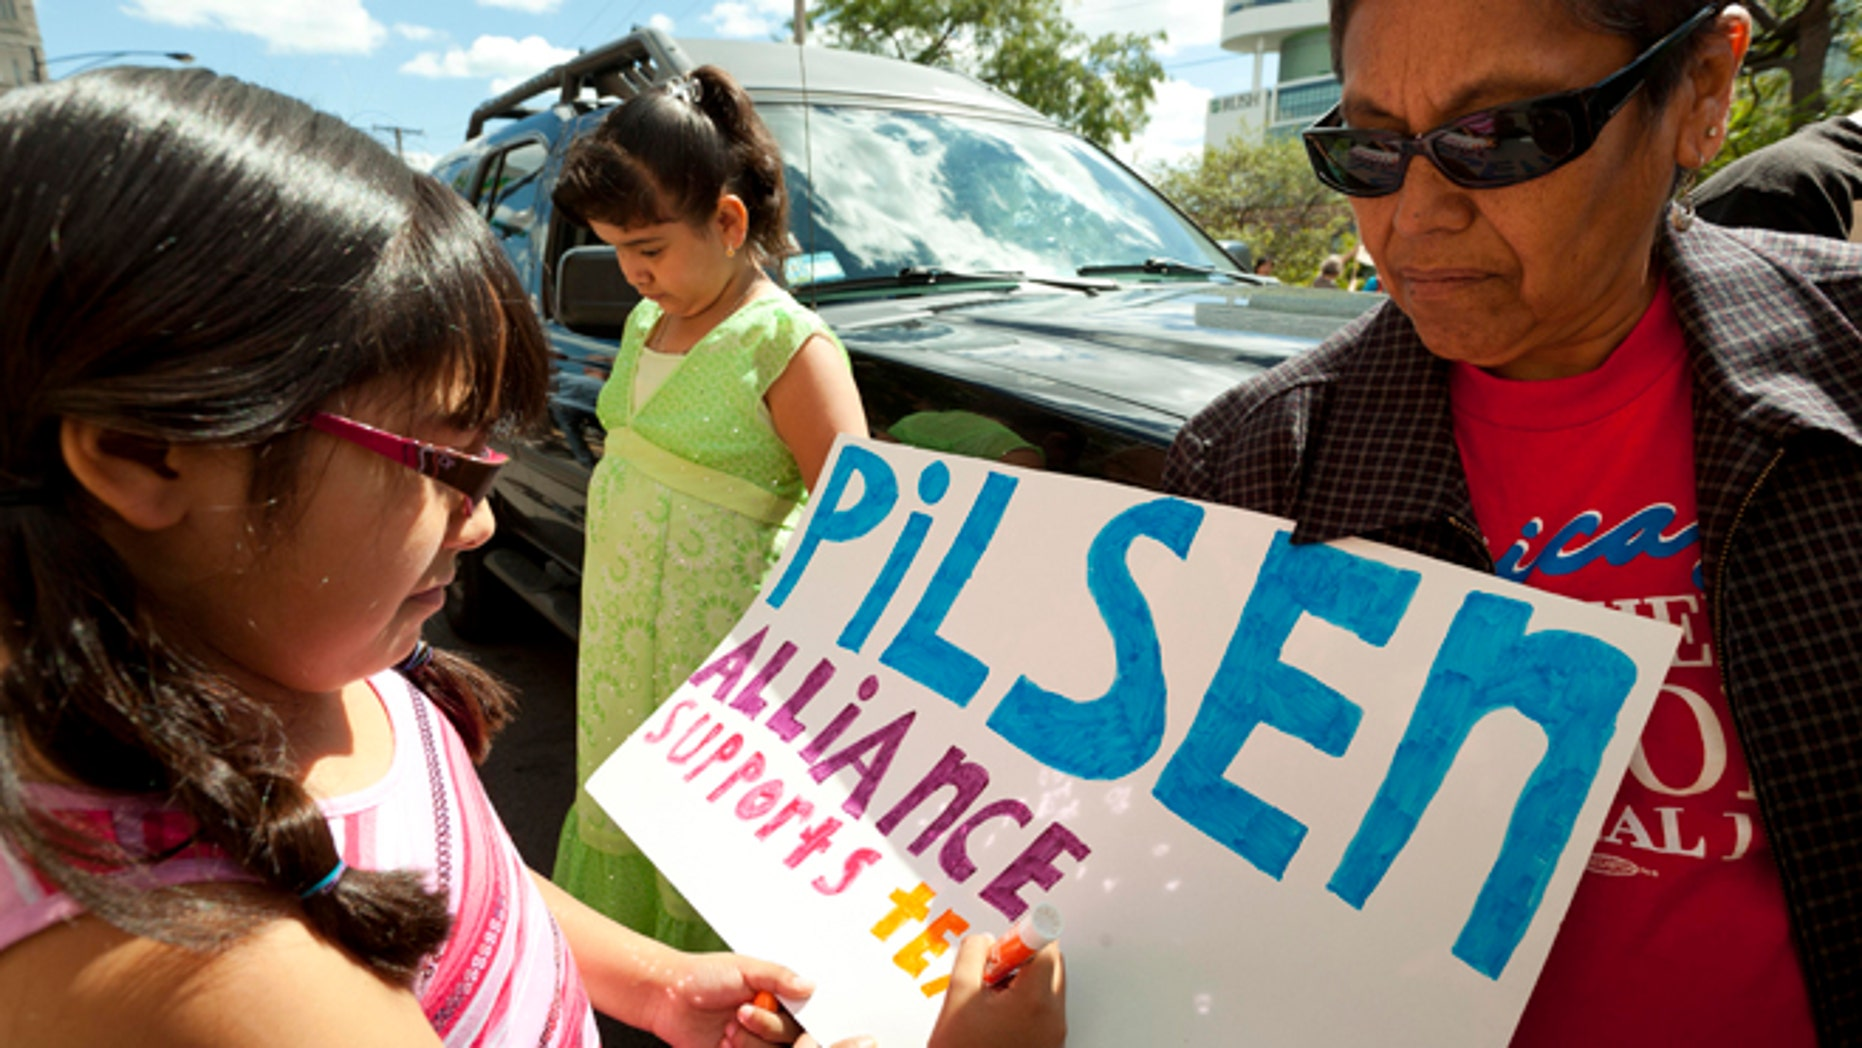 Sep. 8: Eight-year-old TaliSol Medina, left, a third-grader from Galileo School, puts the finishing touches on a pro-teachers poster for the Pilsen Alliance community group in front of the Chicago Teachers Union strike headquarters on Saturday in Chicago. AP Photo/Sitthixay Ditthavong)